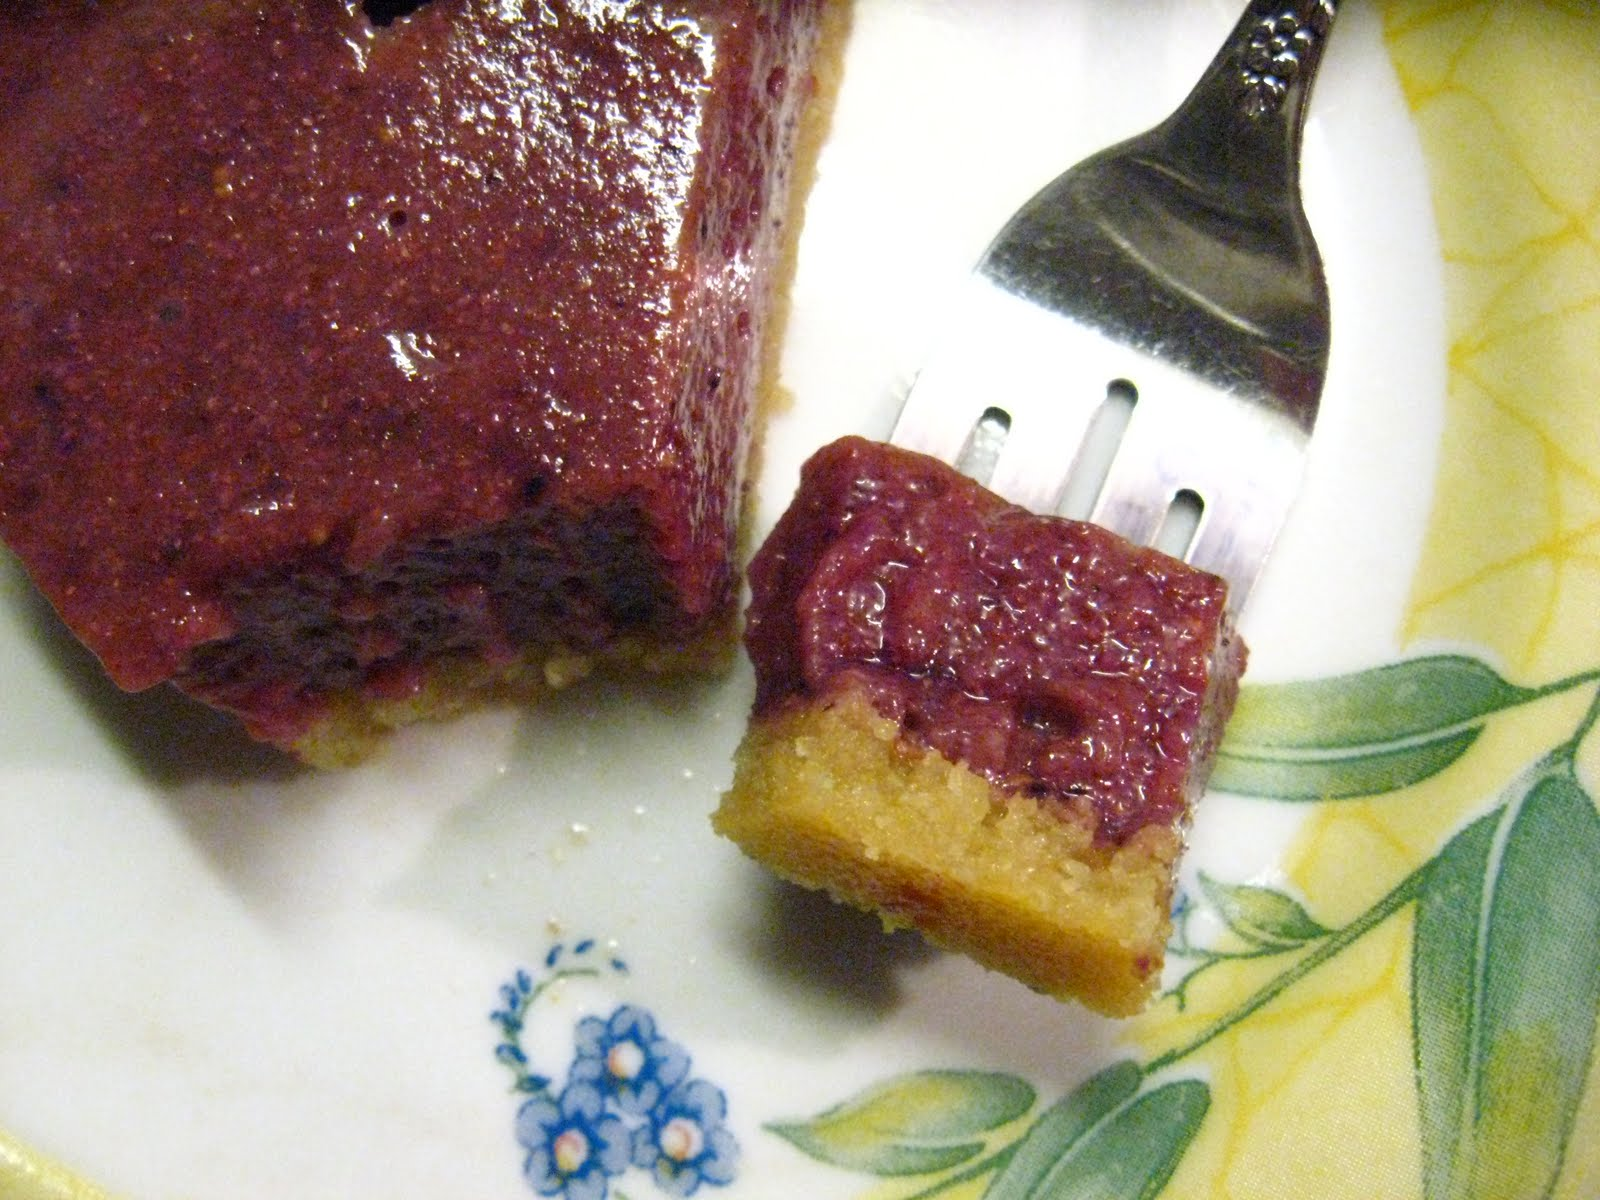 ... .com: Gluten Free Raw Berry Blueberry Pie & Pudding Recipe